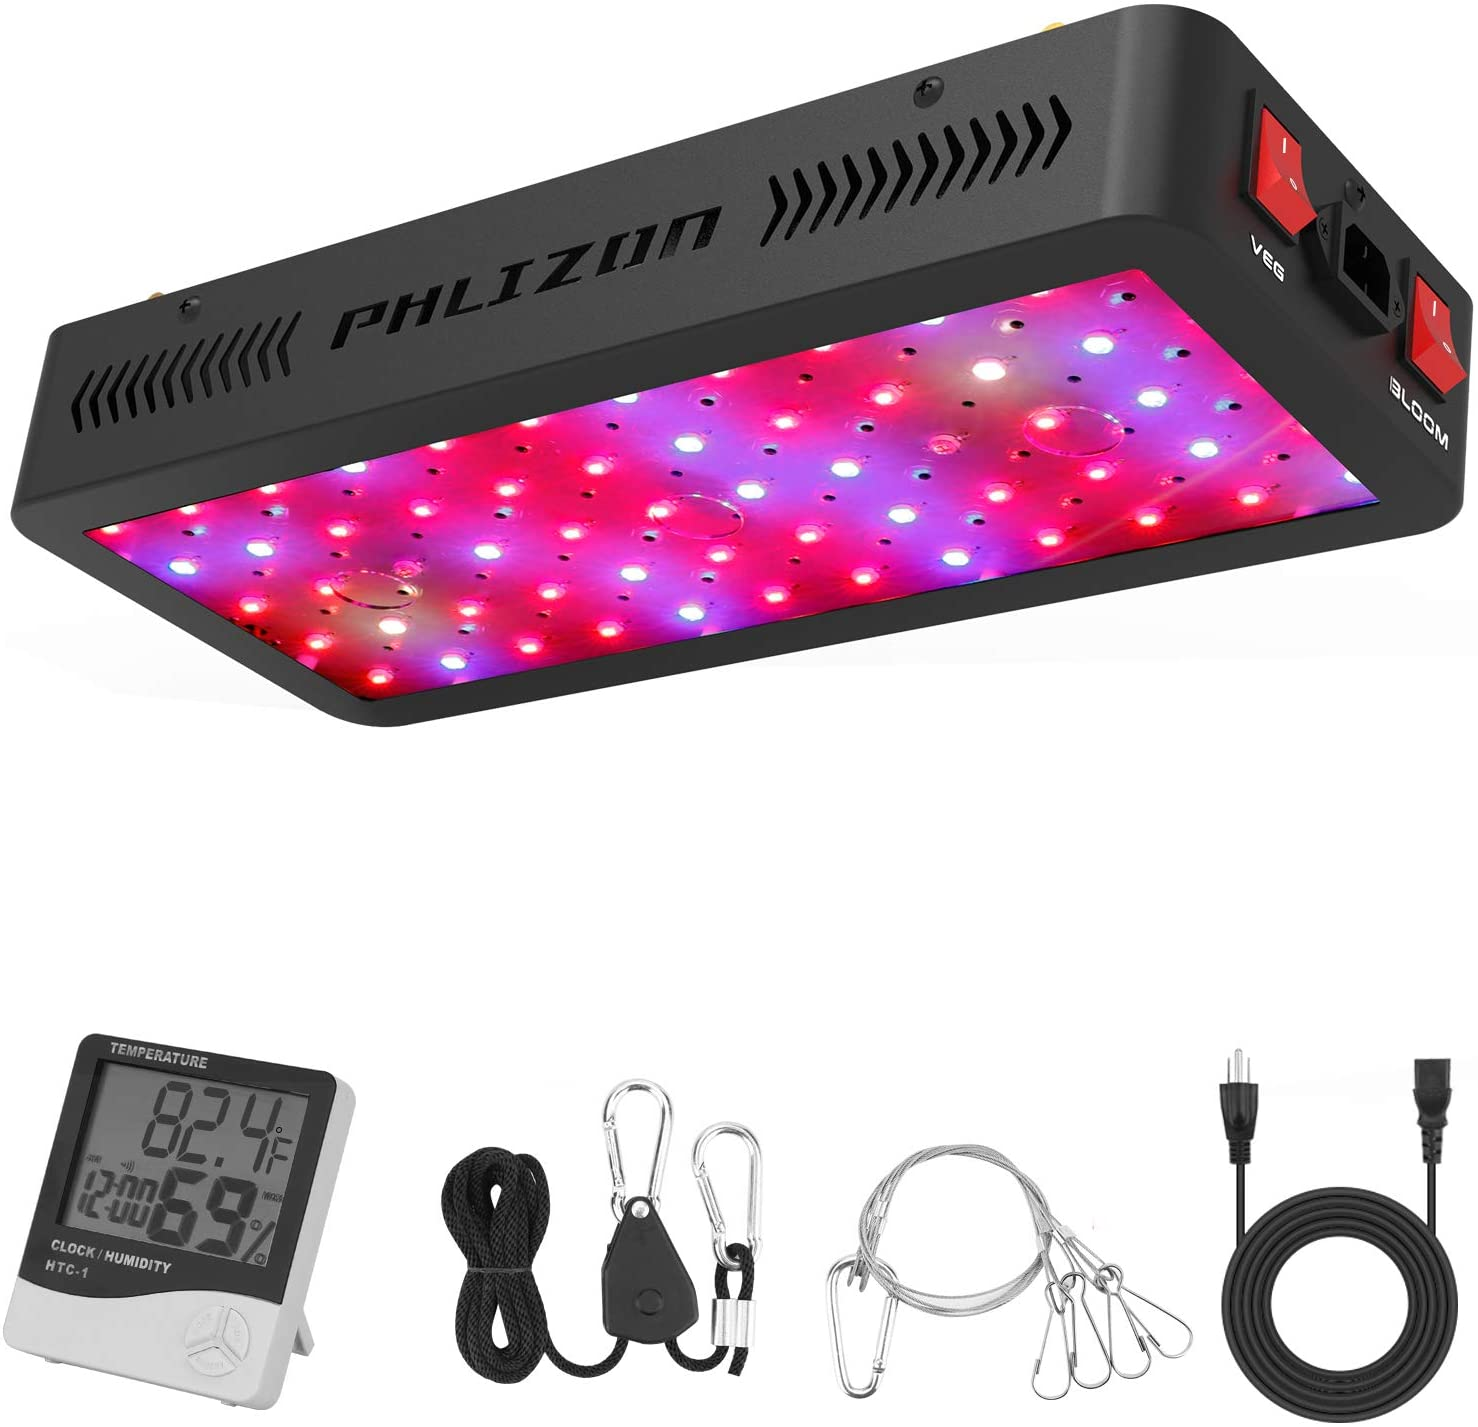 Phlizon Full-Spectrum LED Grow Light w